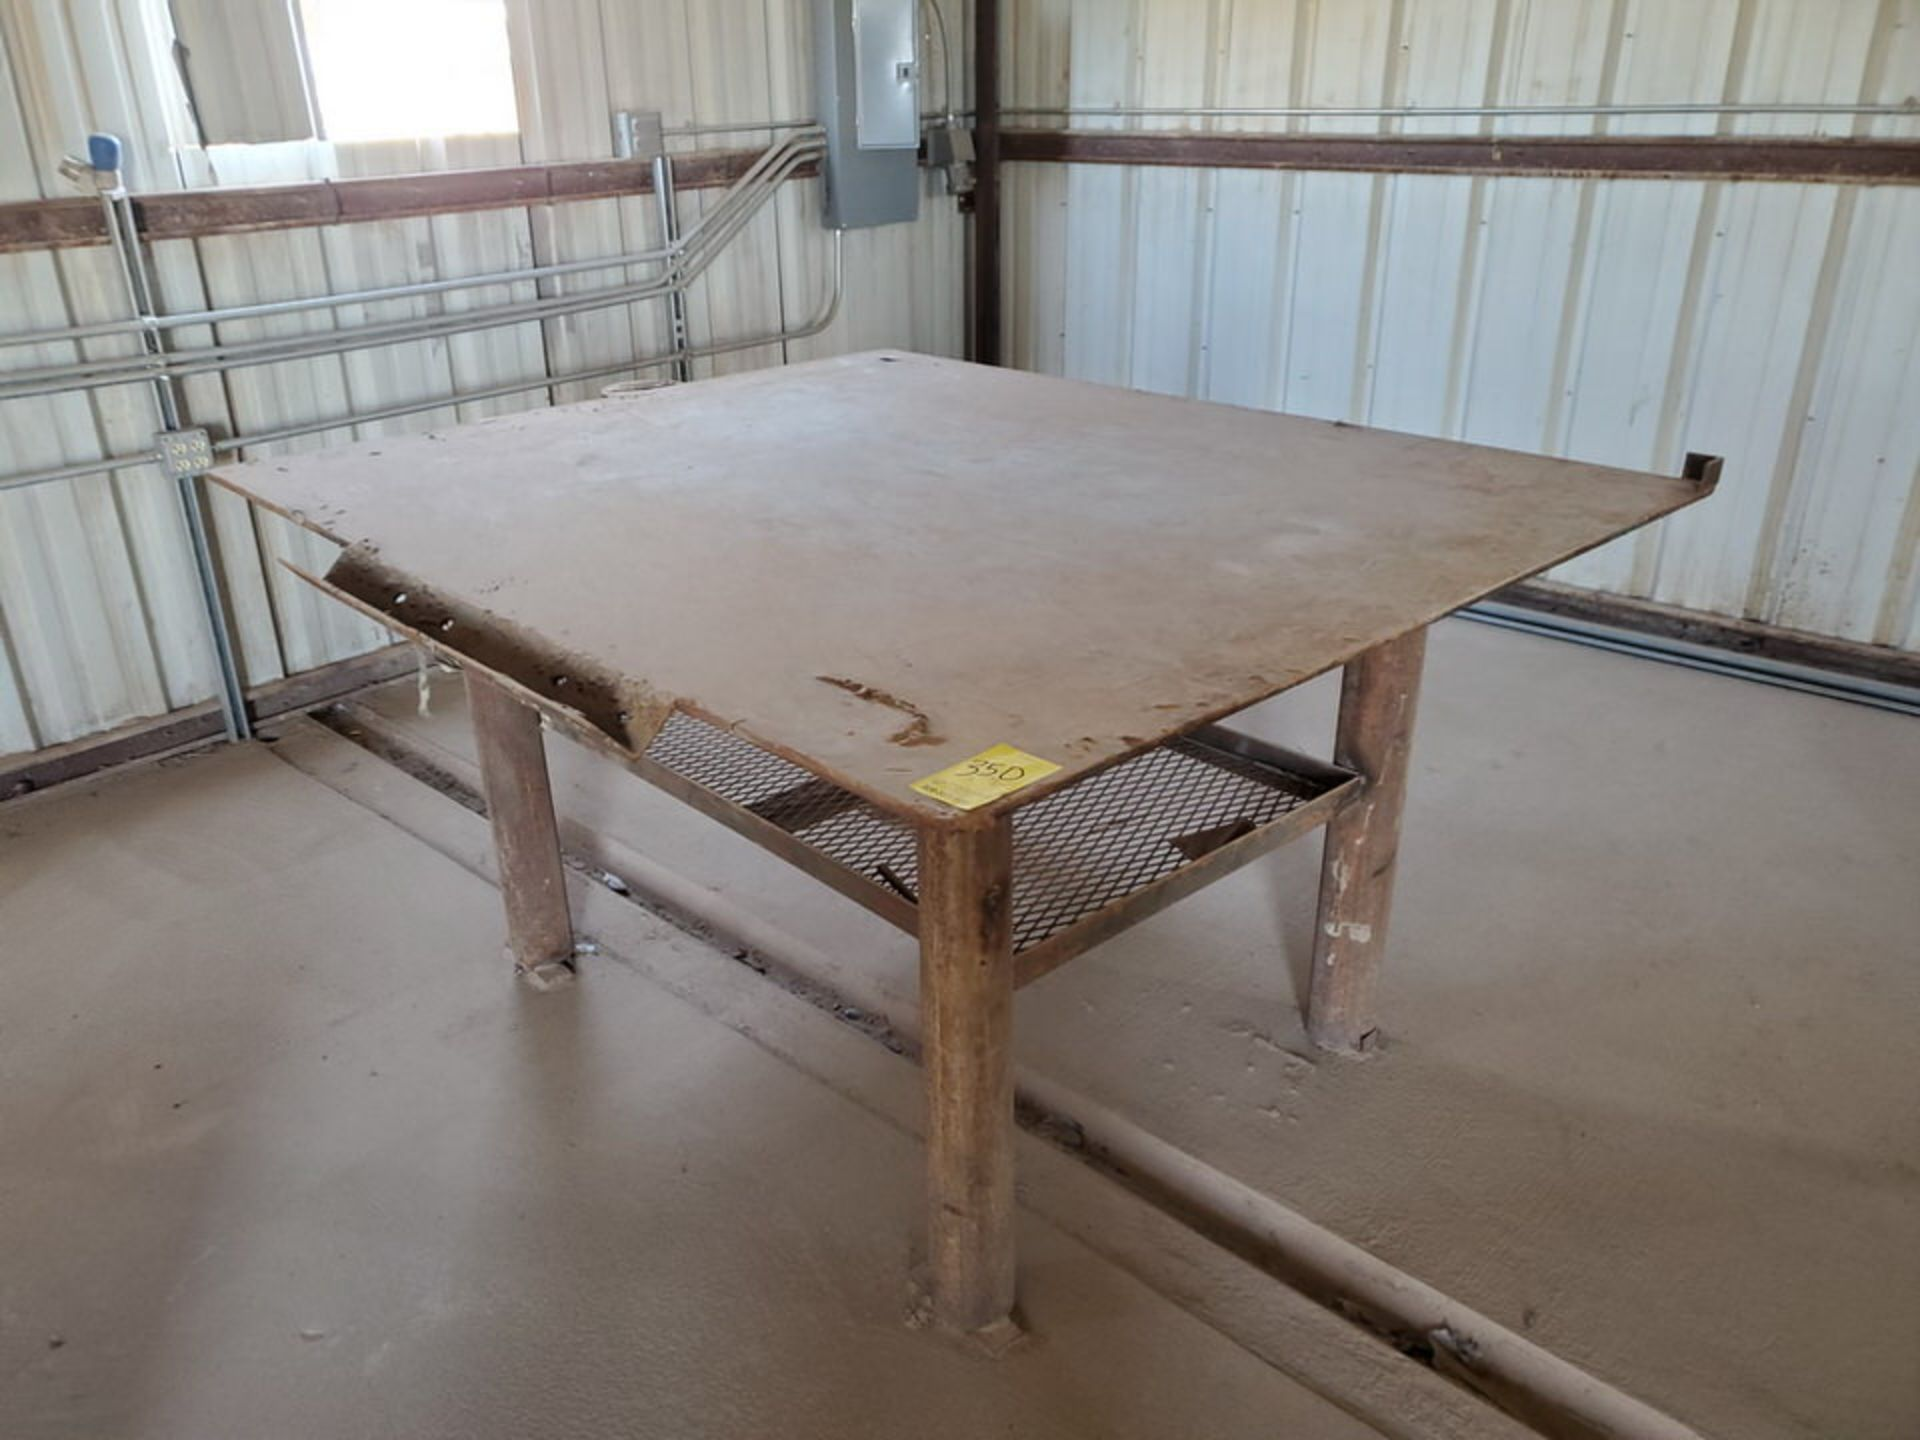 """Welding Tables (1) 37"""" x 65"""" x 36"""", W/ 5-1/2"""" Vise, (1) 72"""" x 64"""" x 38"""" - Image 2 of 8"""